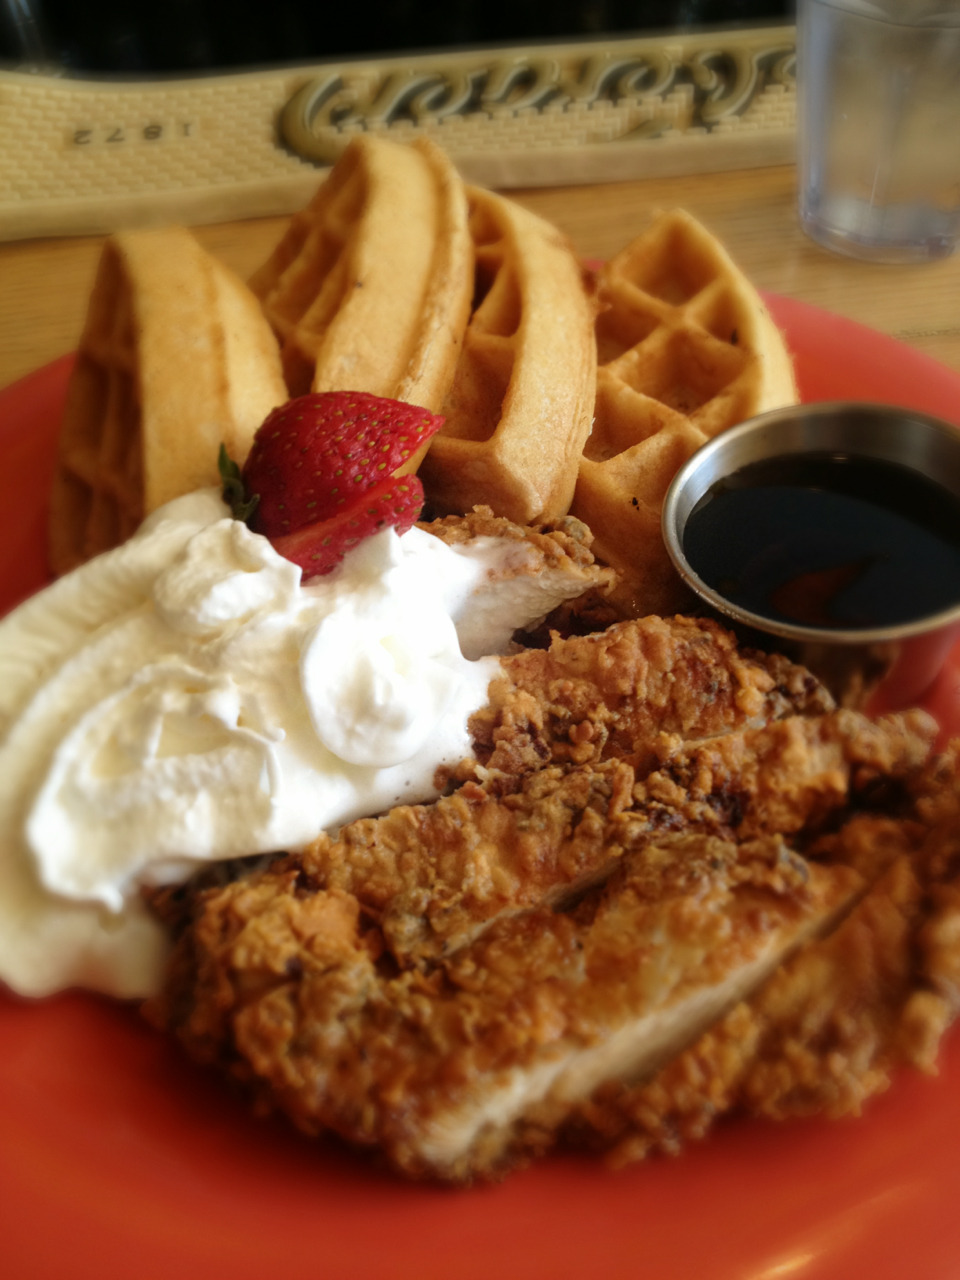 birdmechanical:  Comfort food, chicken n waffles. Chicken was appreciatively spicier than I anticipated.